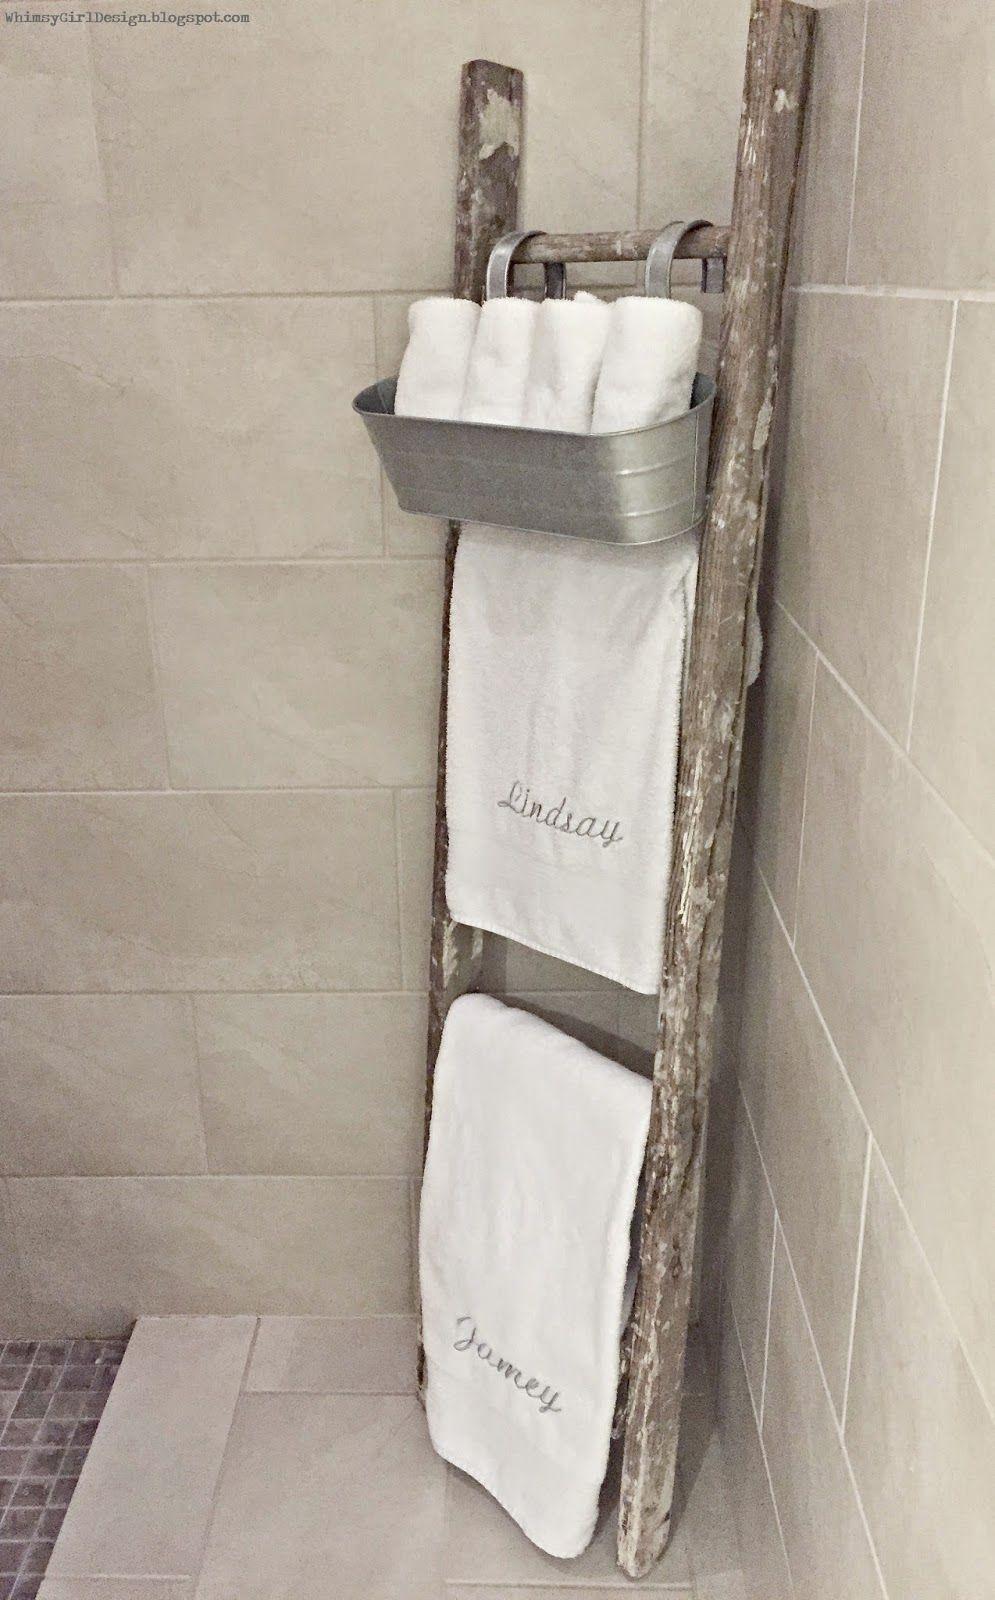 Whimsy girl design master bathroom old rustic ladder used as towel